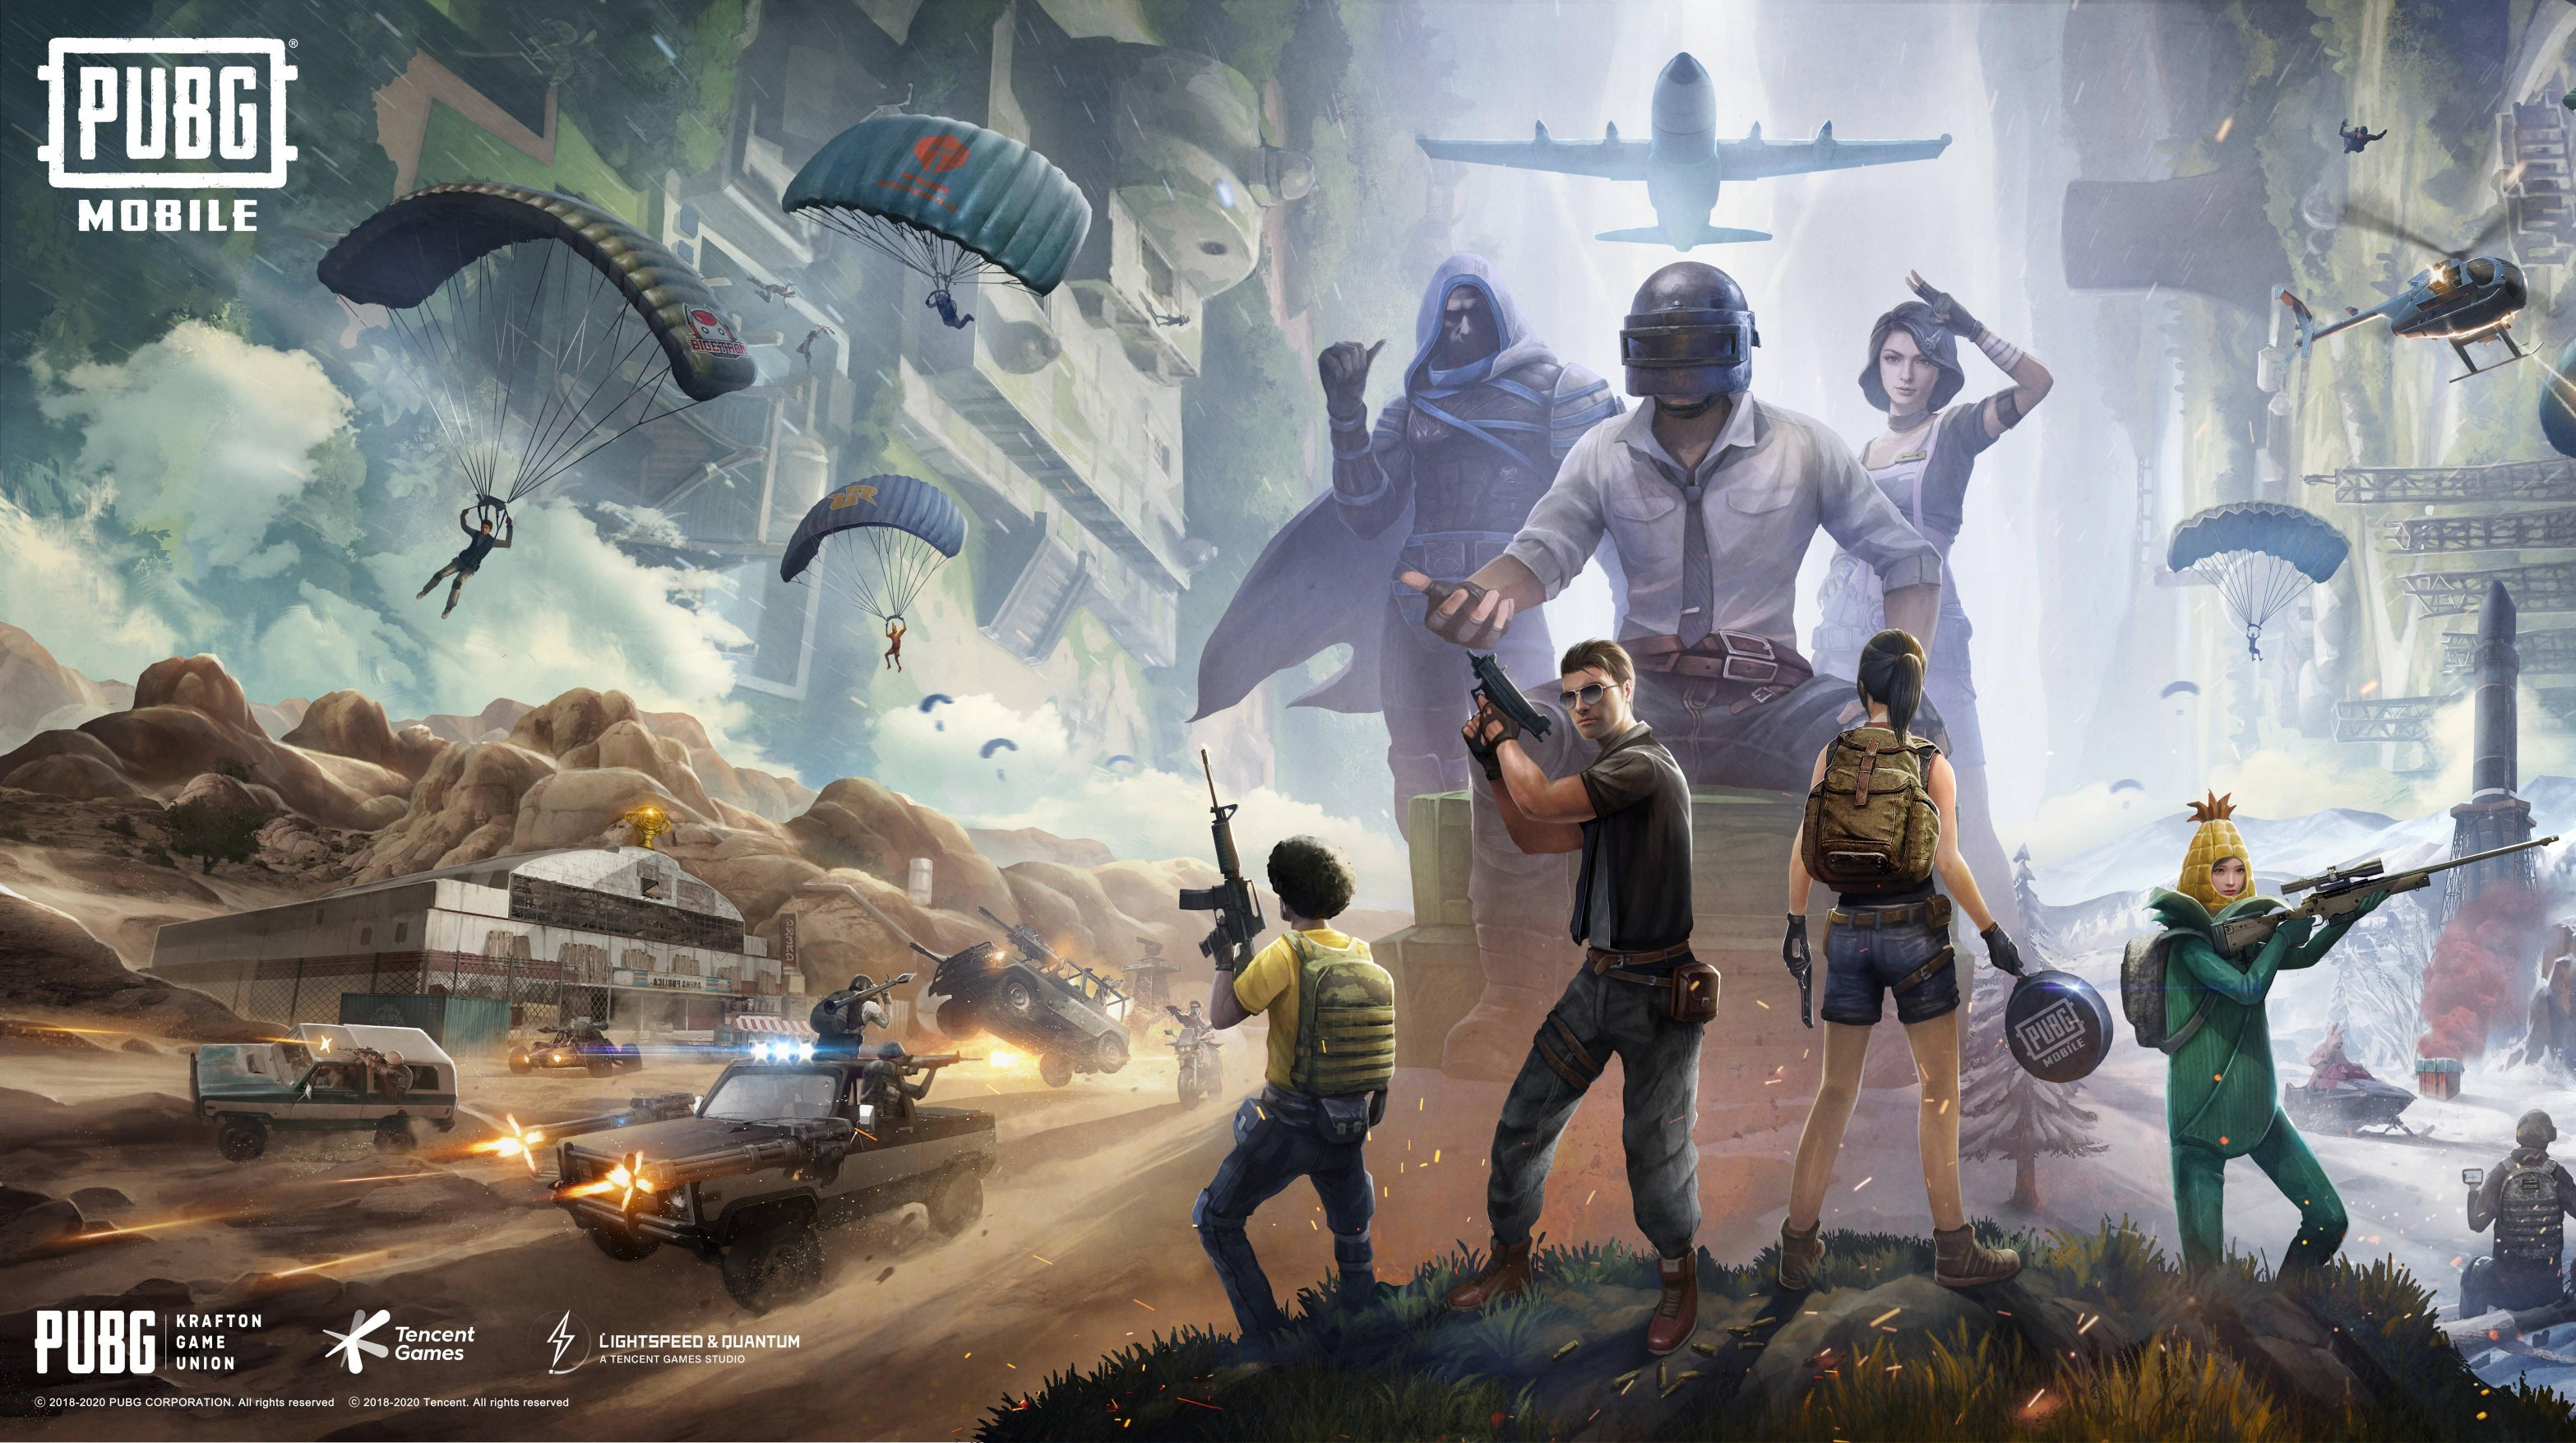 Release date and content of PUBG Mobile season 14 royale pass leaked